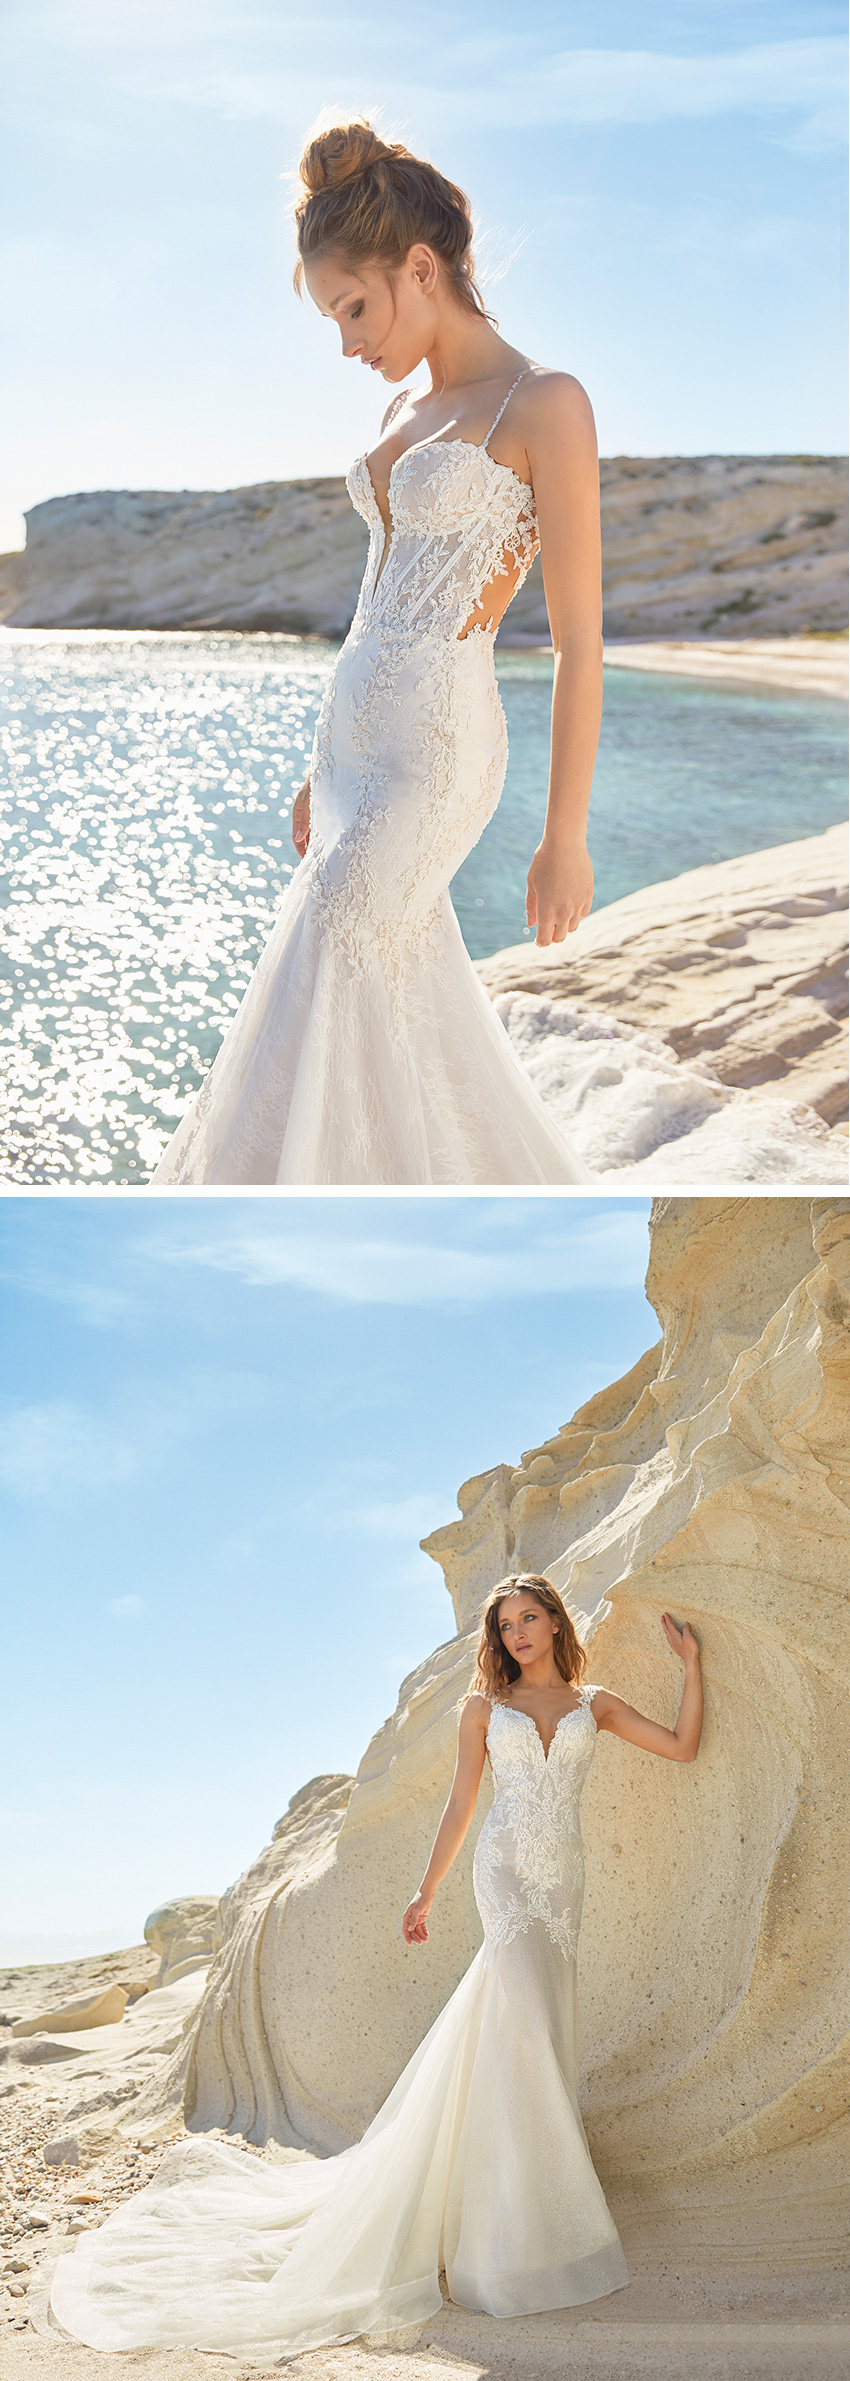 Ines by Ines Di Santo Spring 2021 collection inspired in famous beaches around the world featured in Perfect Wedding Magazine